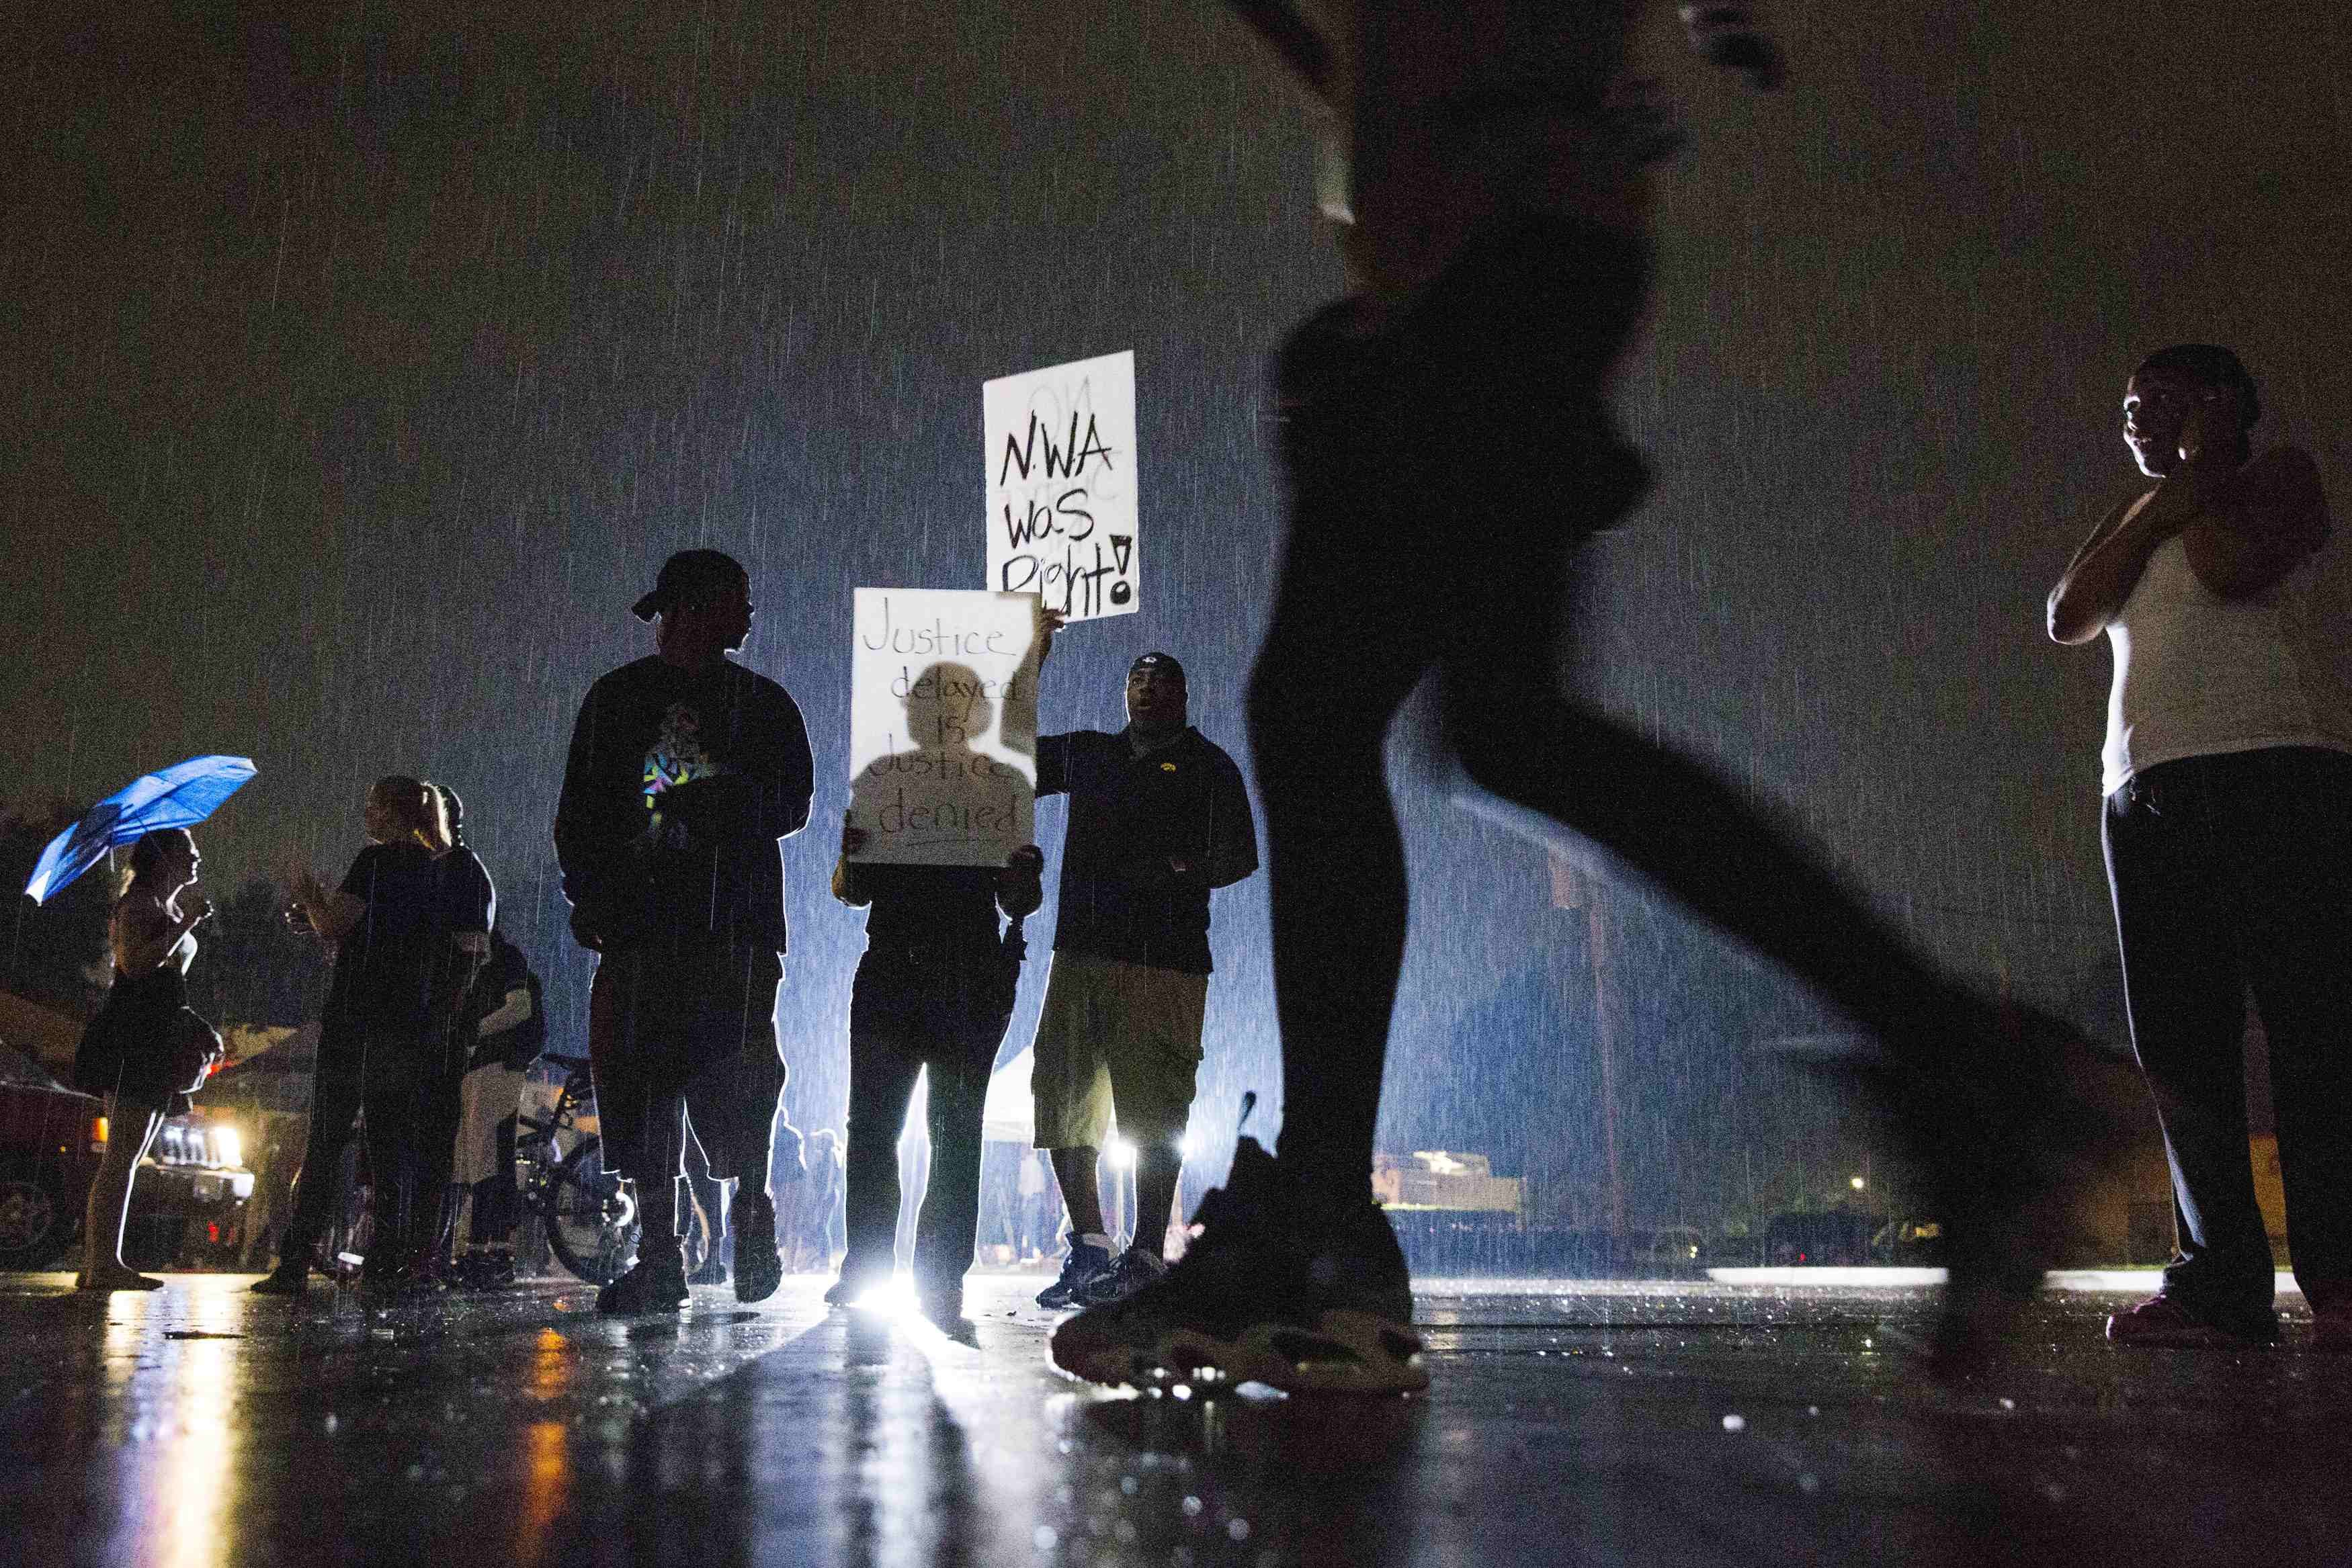 Protesters hold signs during a demonstration to protest the shooting of Michael Brown and the resulting police response in Ferguson, Mo. on Aug. 15, 2014.